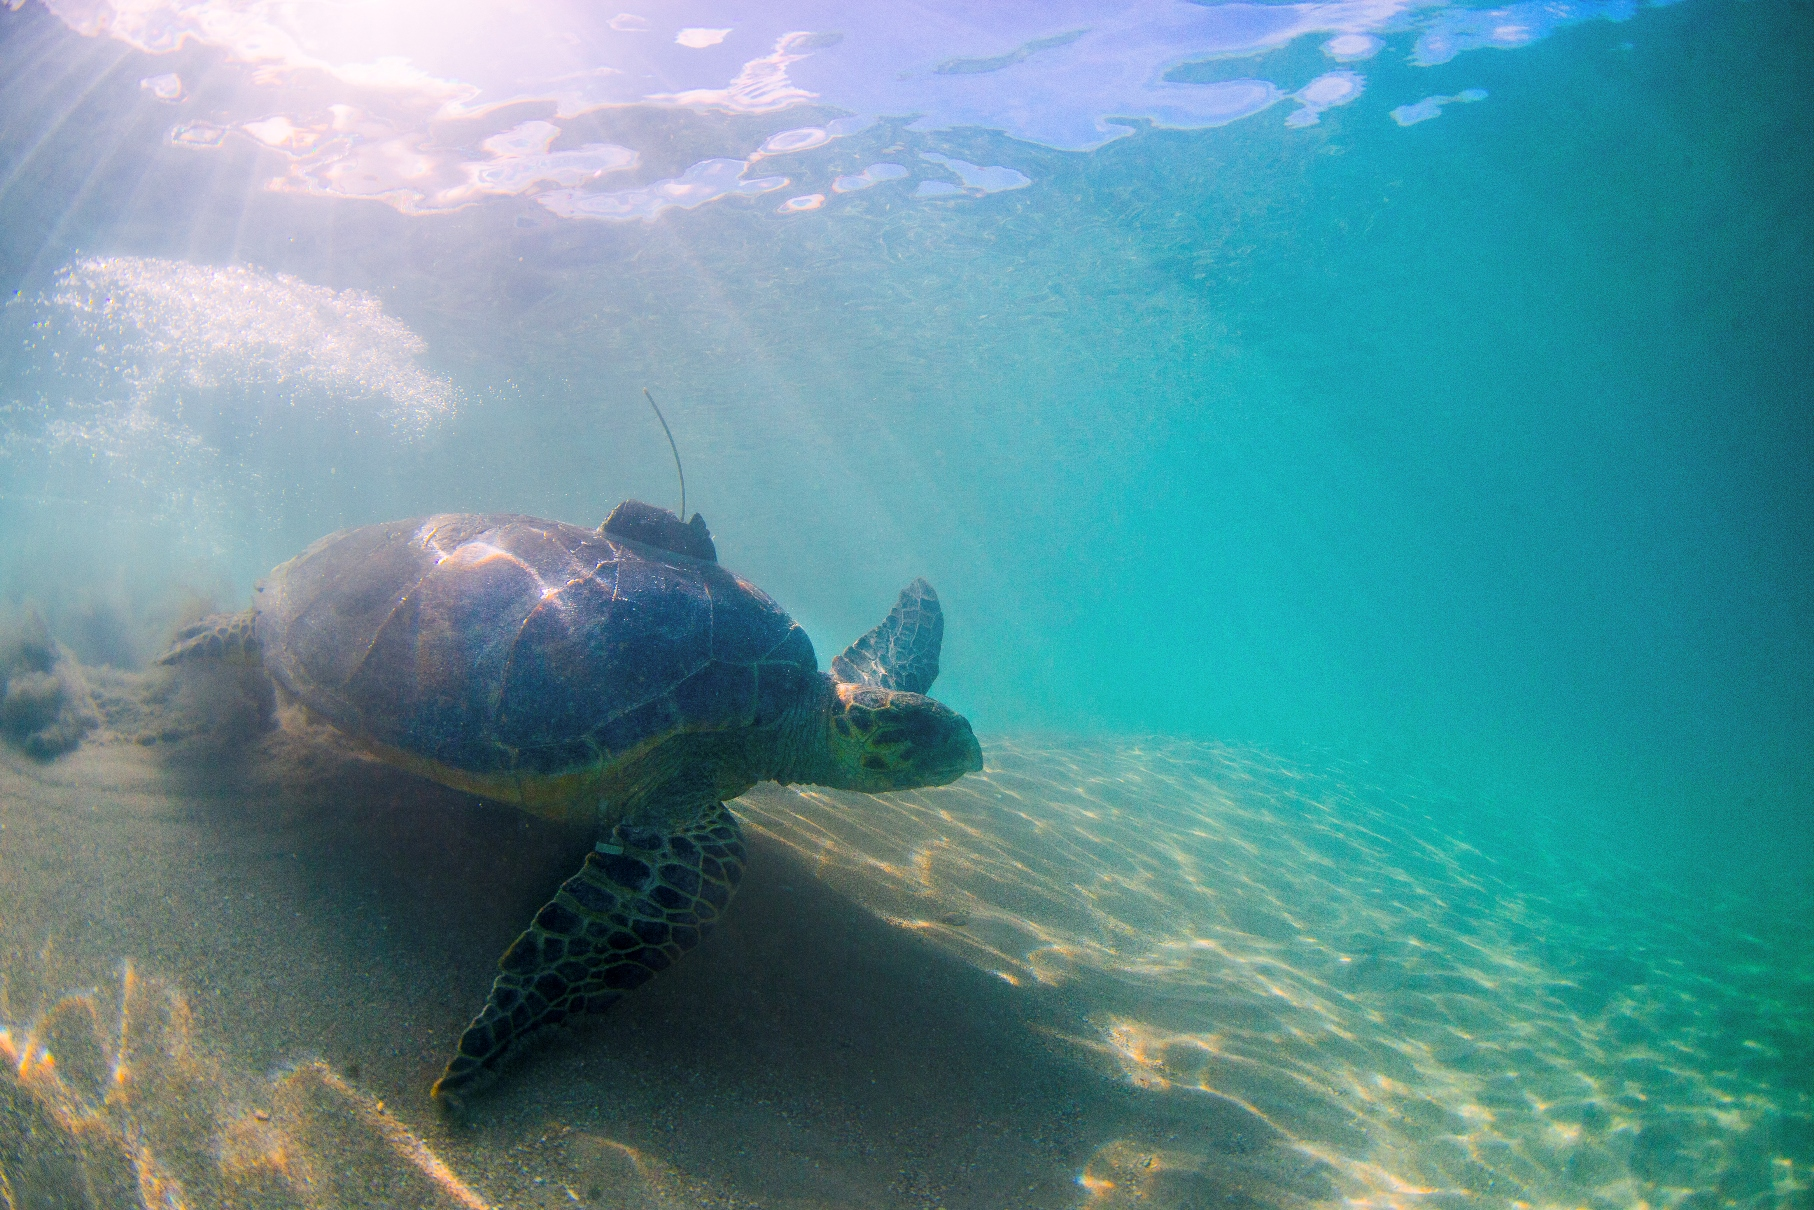 Tilly, a hawksbill turtle, heads to sea after her release from the island of Nevis.